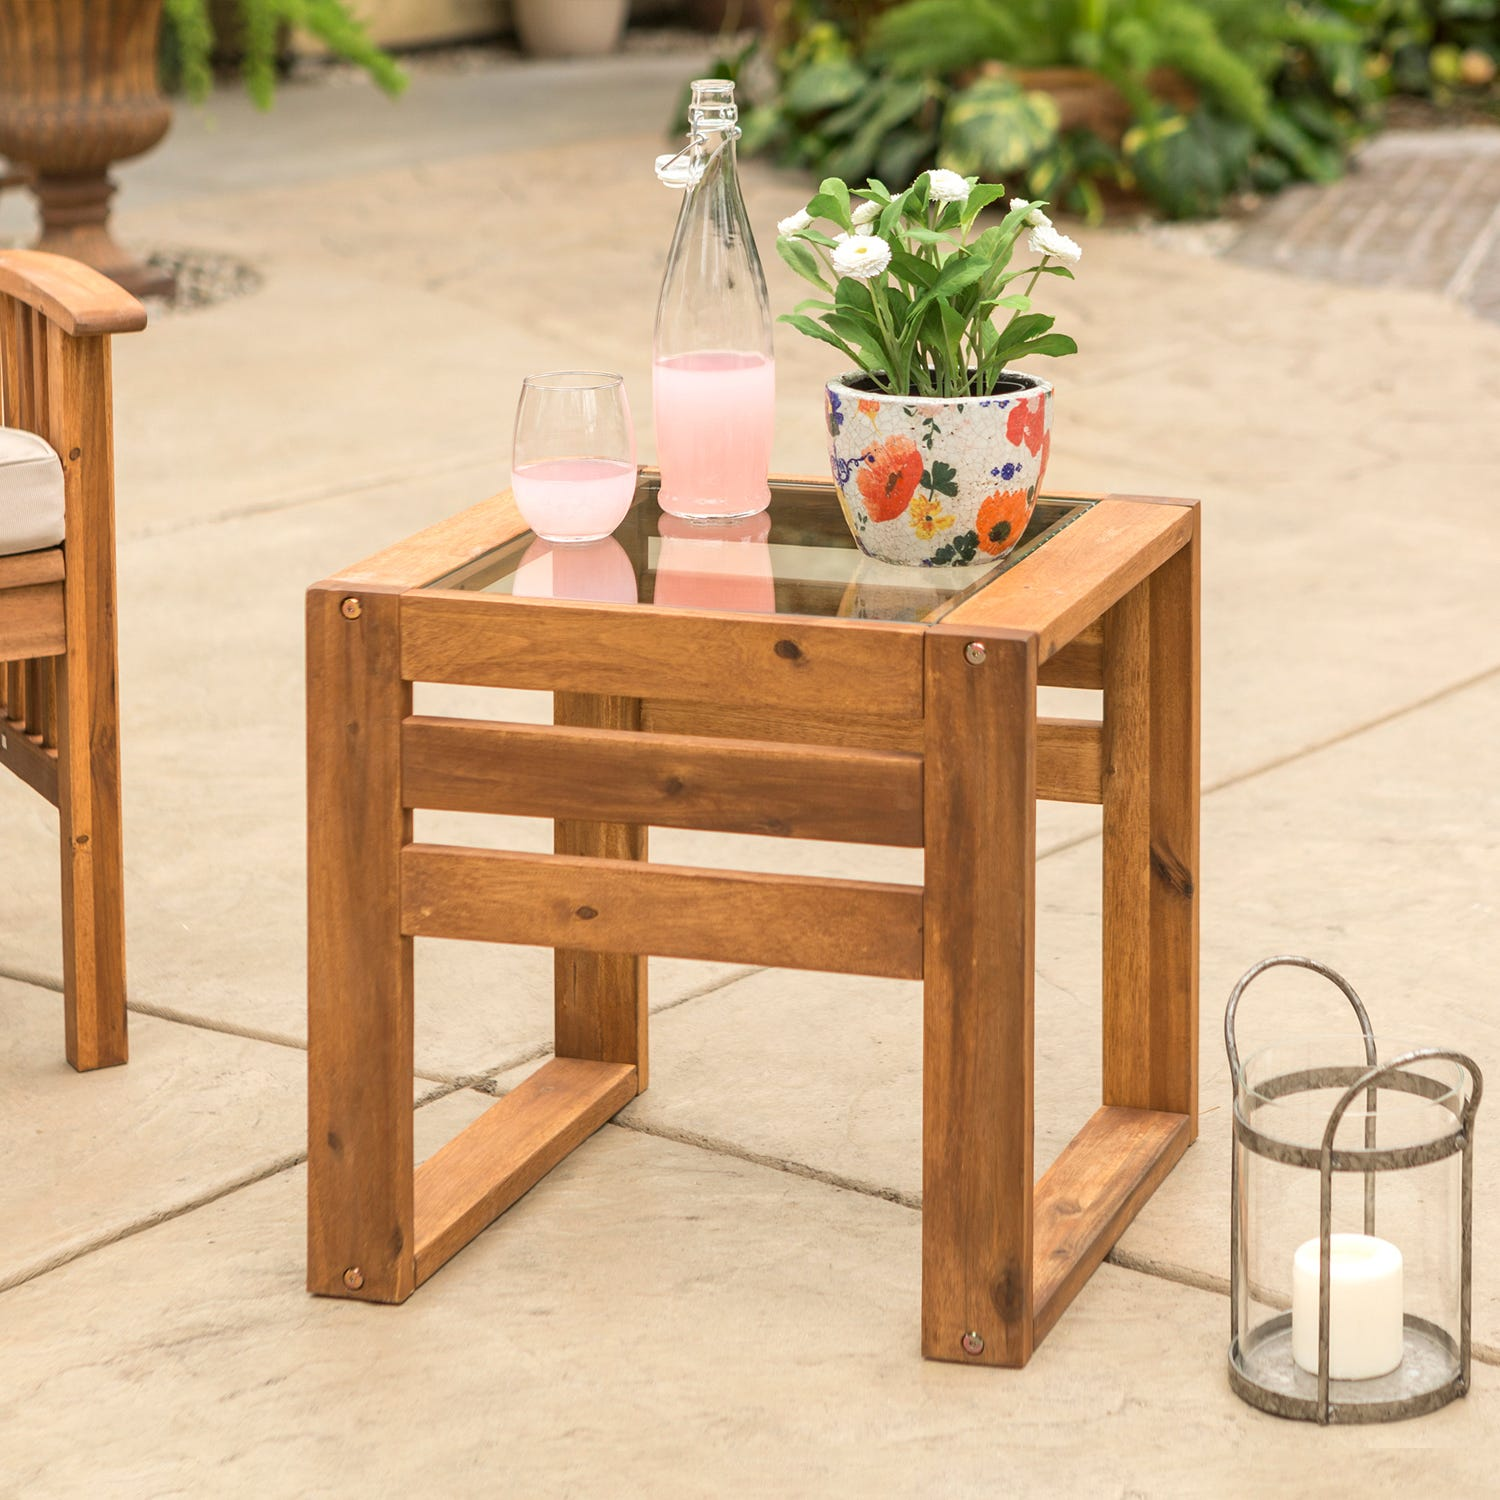 hudson wood patio end table with glass top pier outdoor thank you ethan allen bench gabberts bedroom furniture plastic nic tables lazy boy regina bath toys kmart refinishing